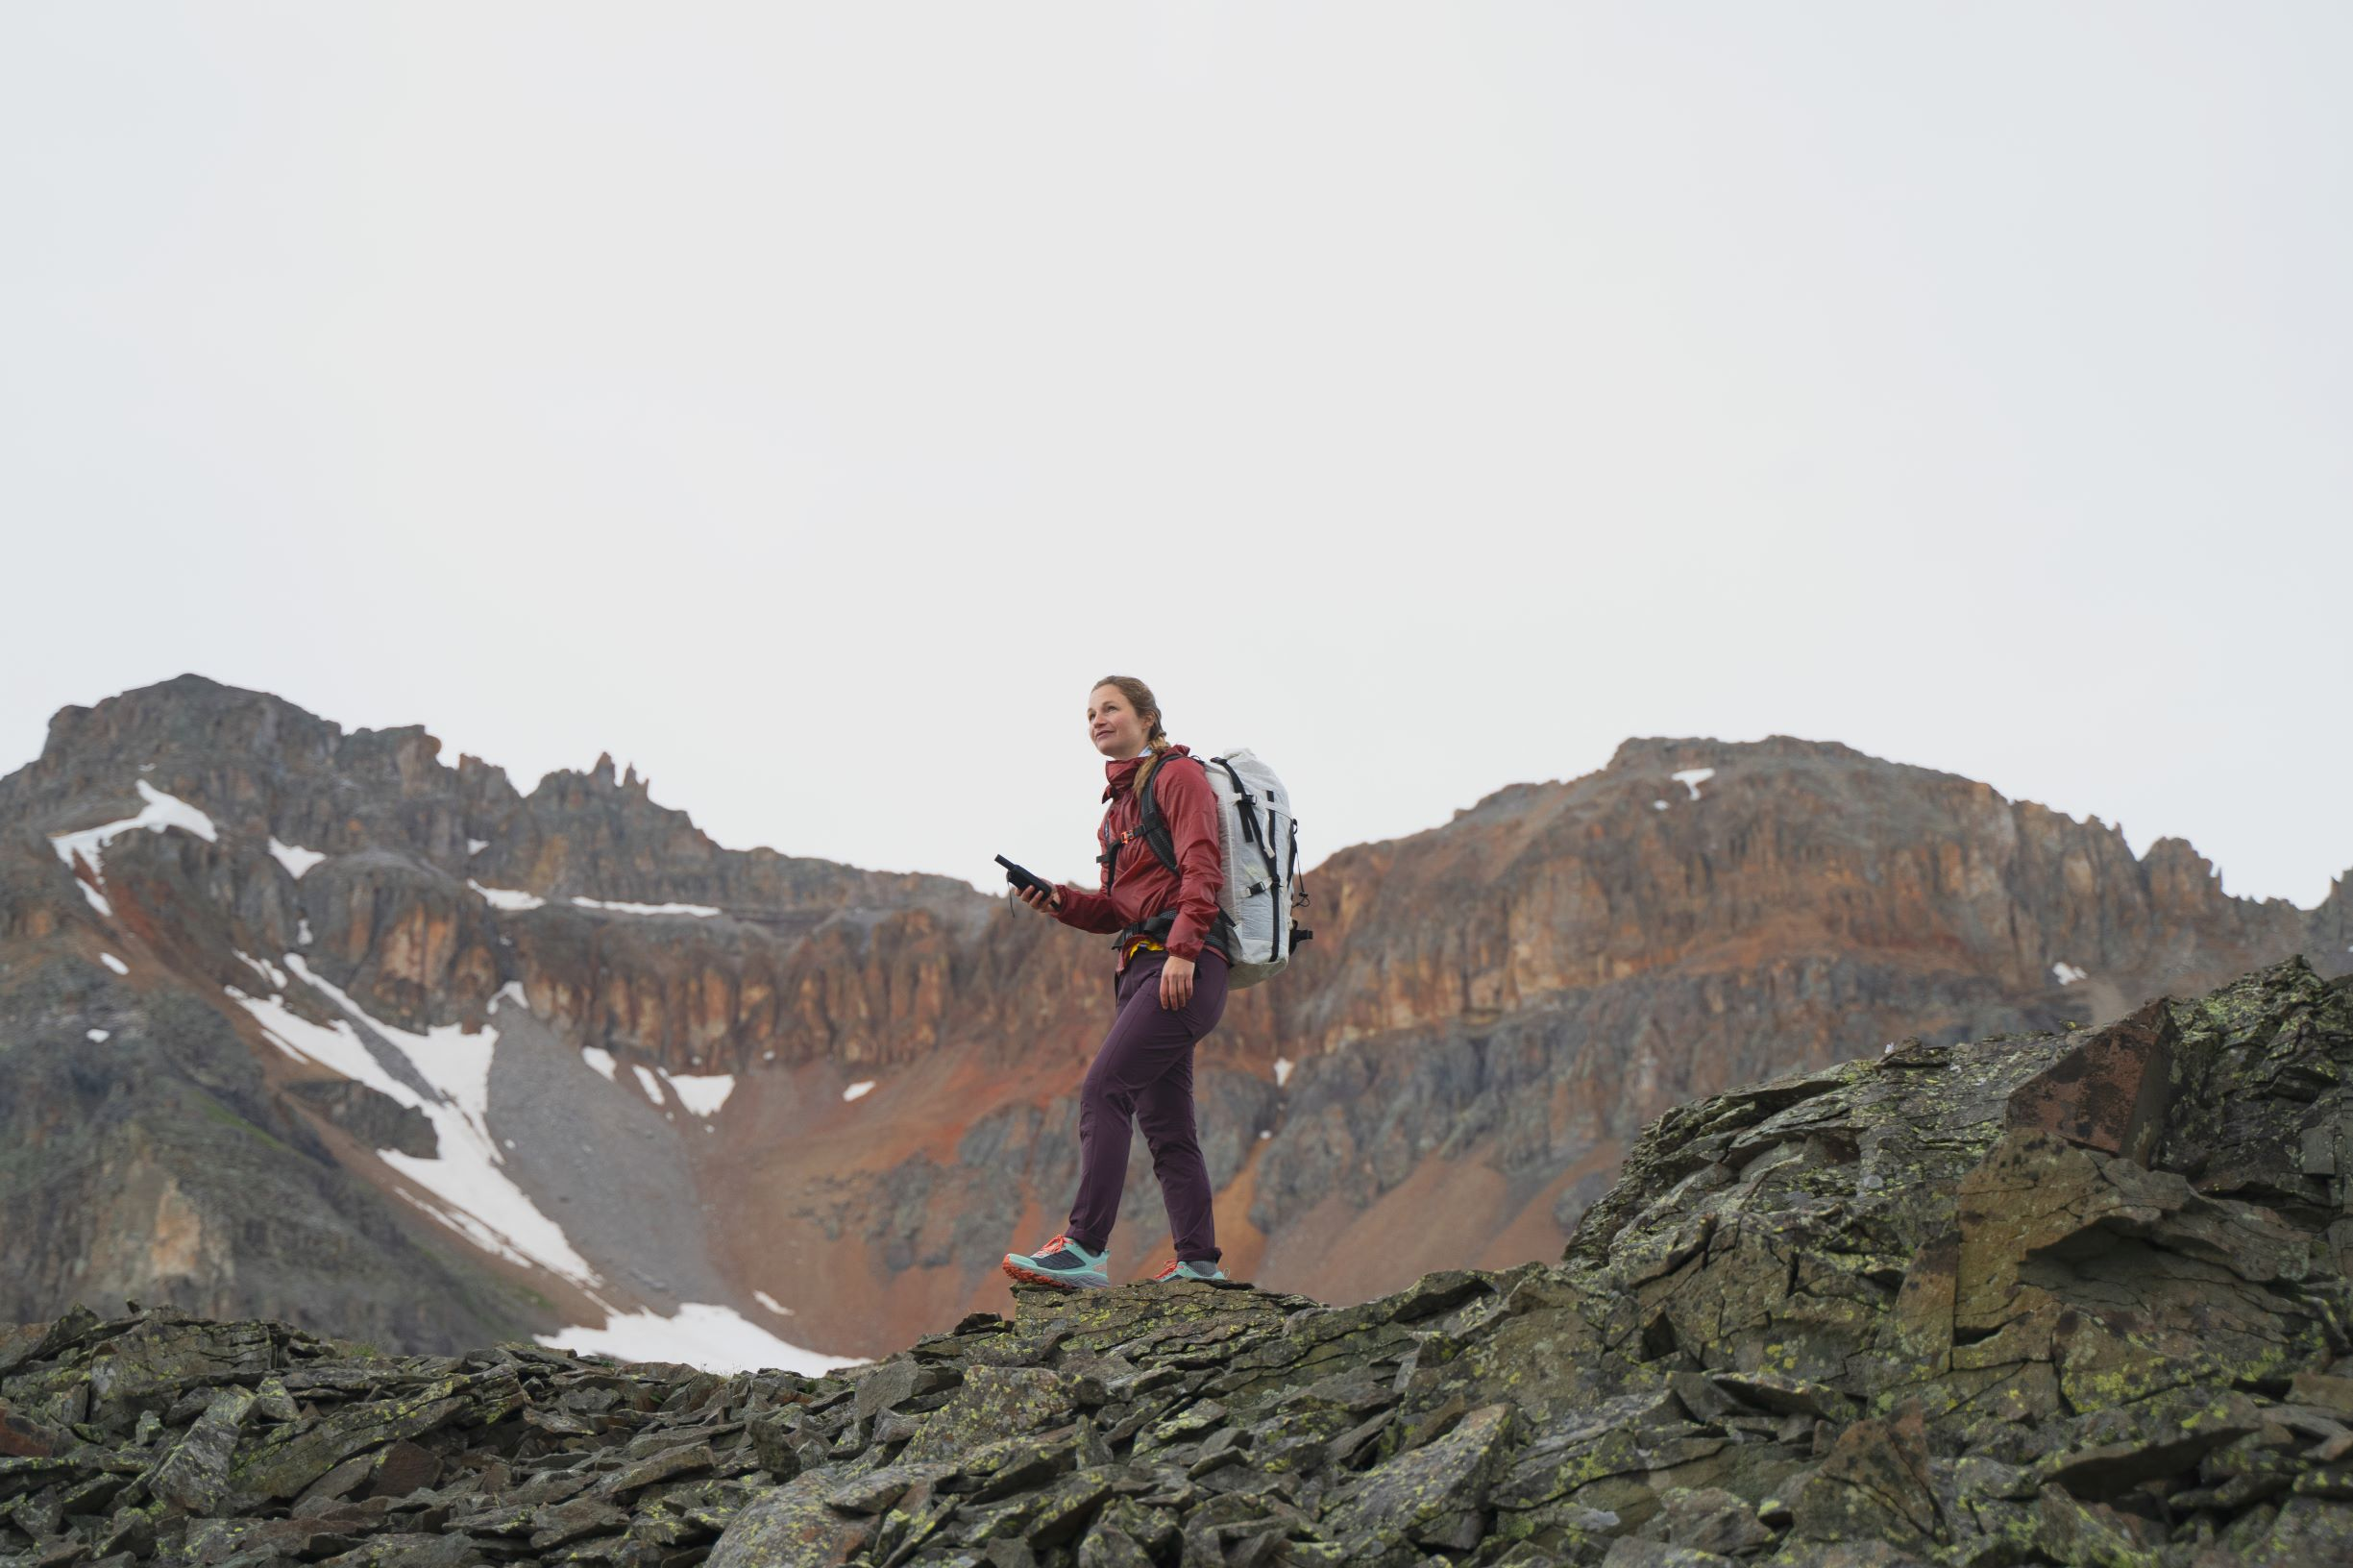 A hiker stands calmly holding a SPOT device in their hand and overlooking a rocky hillside.